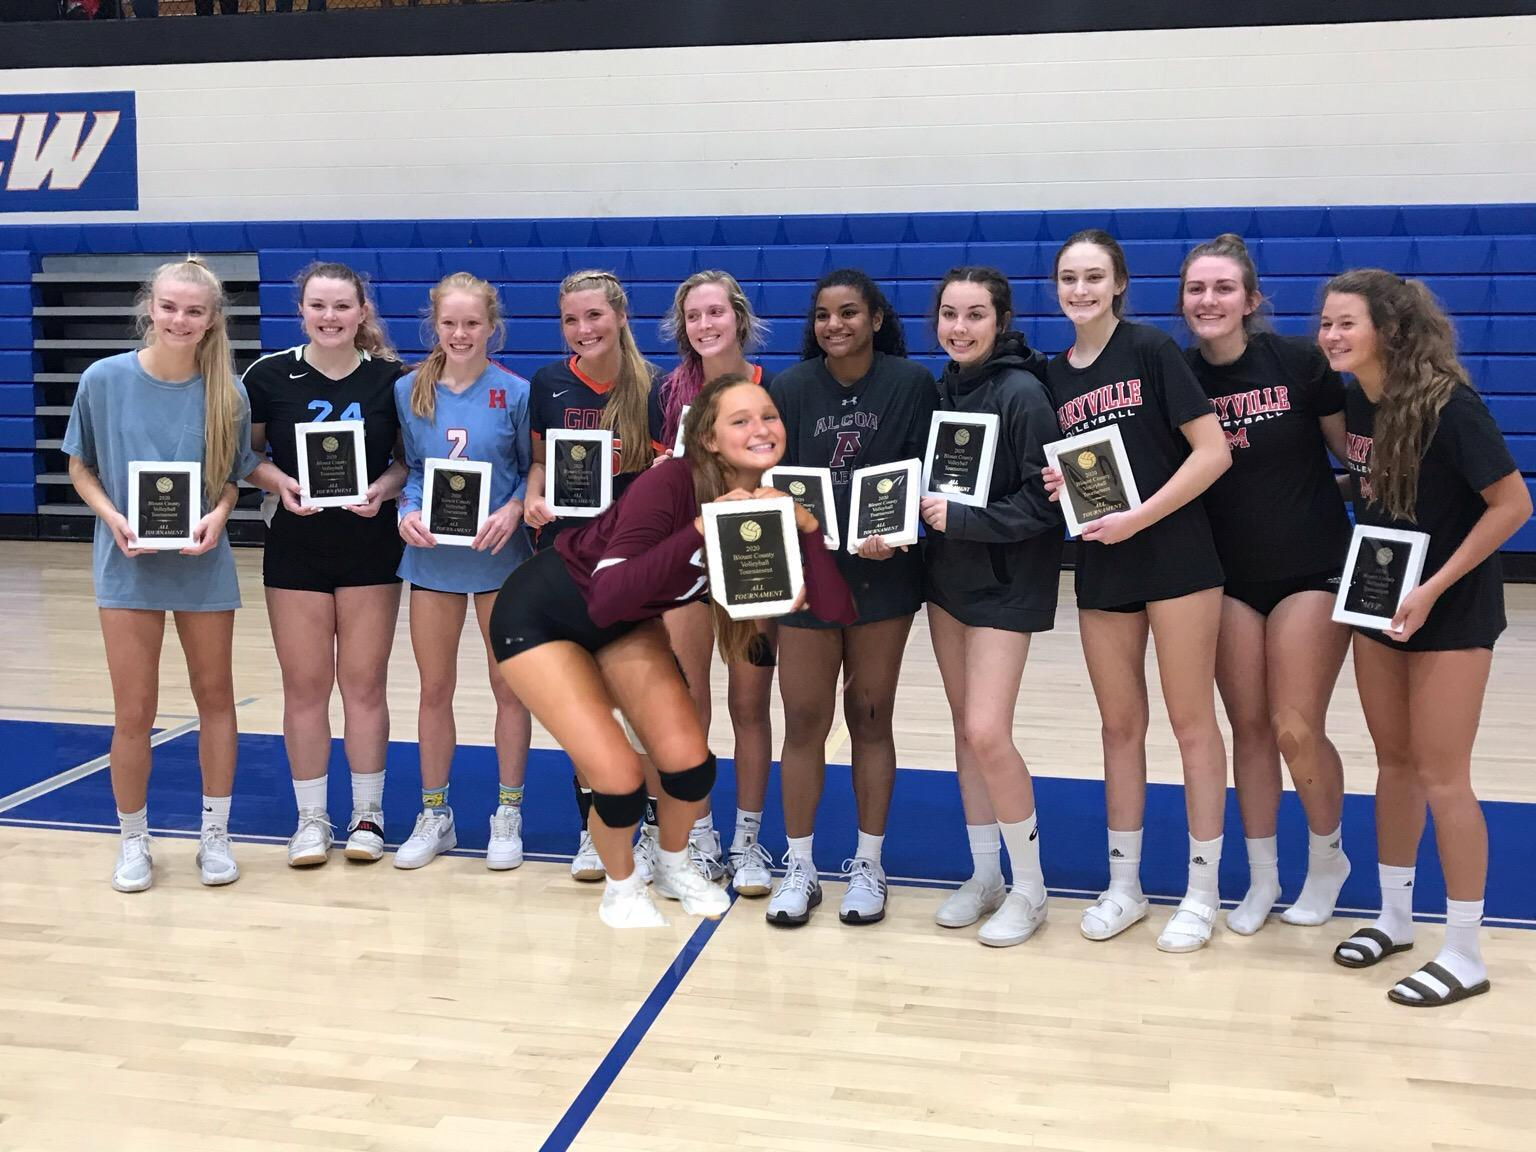 2020 All County Team